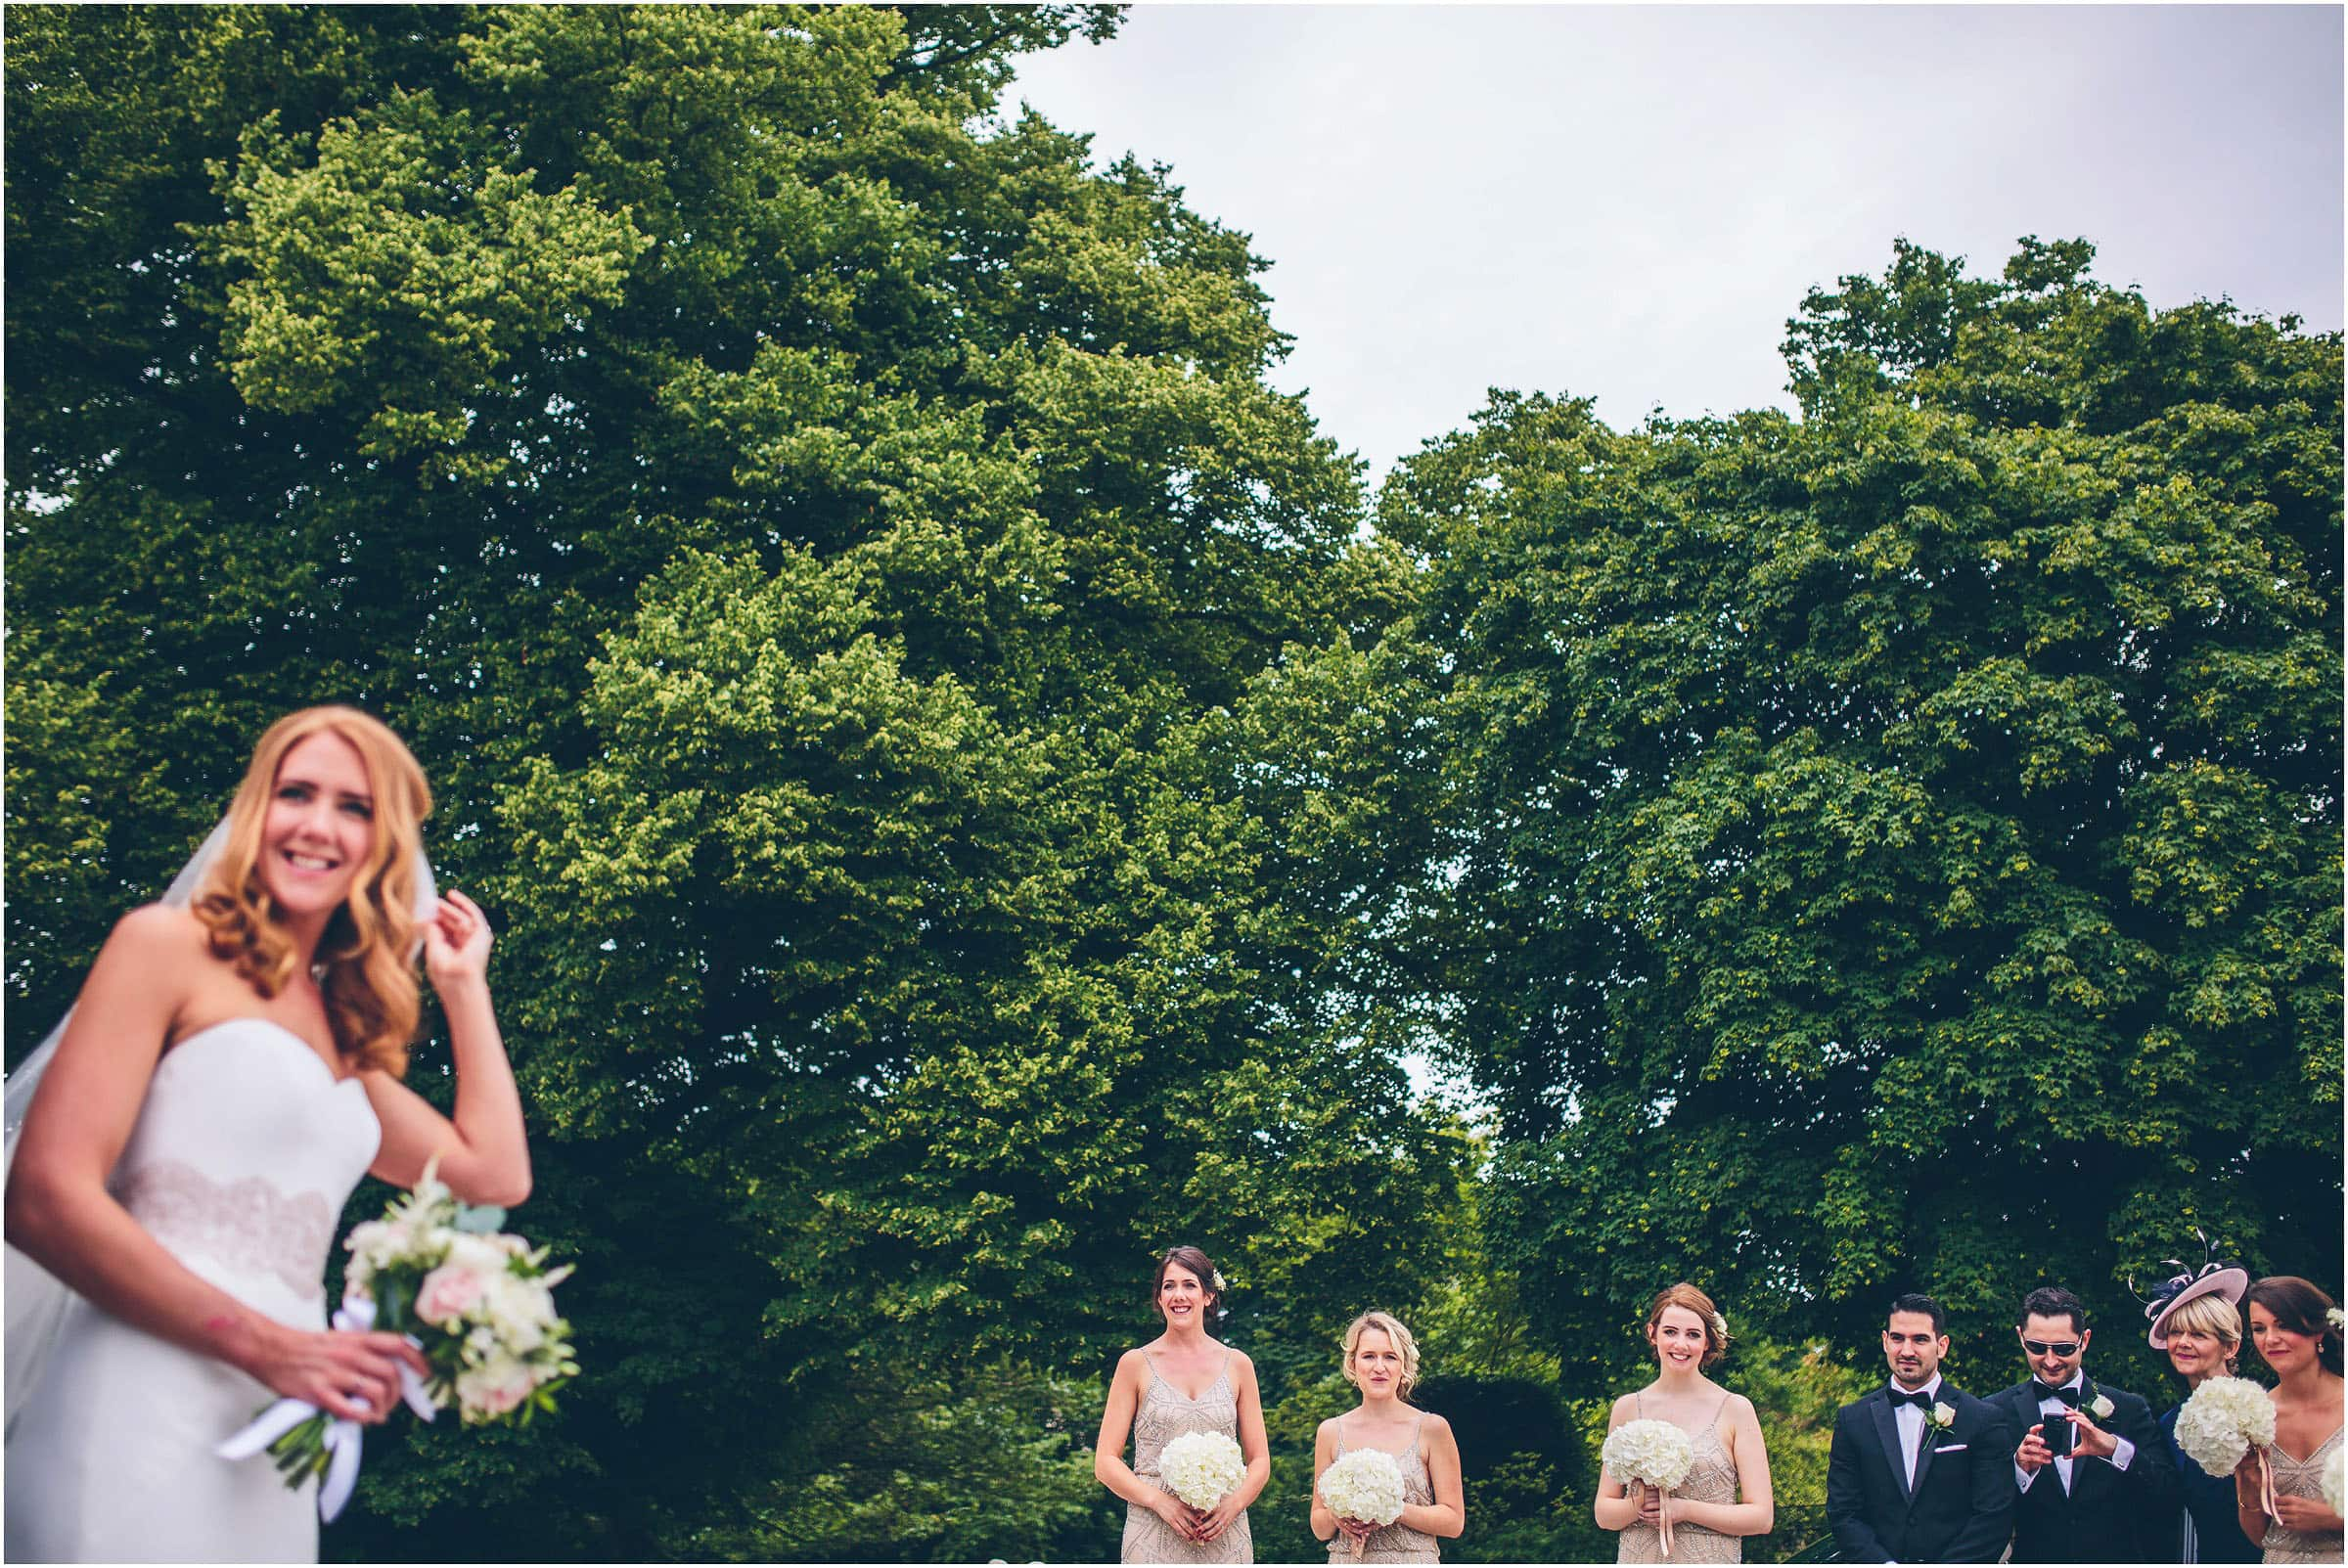 Underley_Grange_Wedding_Photography_0043